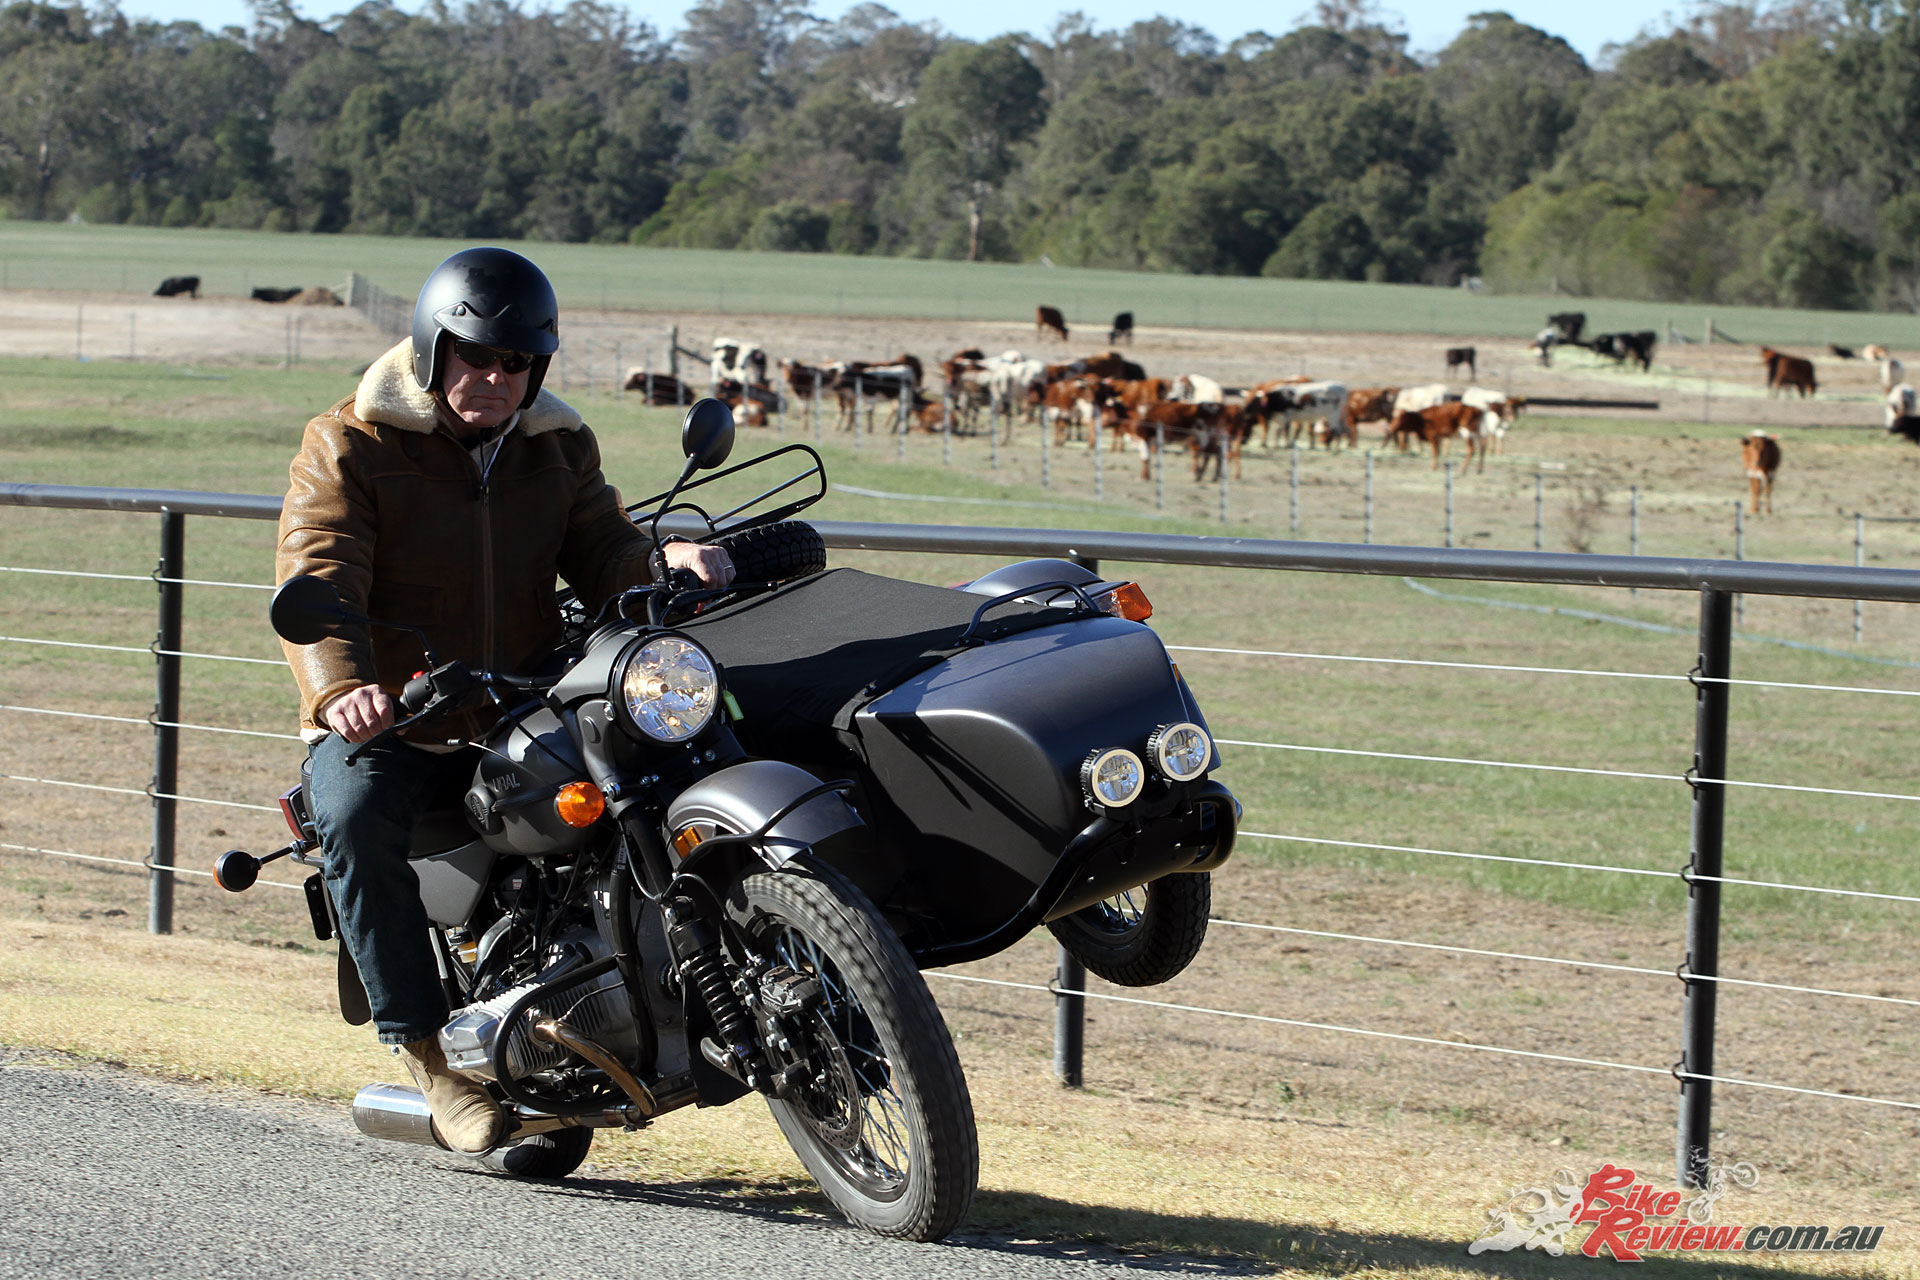 Ural sidecars originate from the Soviet Union in the '40s but have proven a strong option in the long term